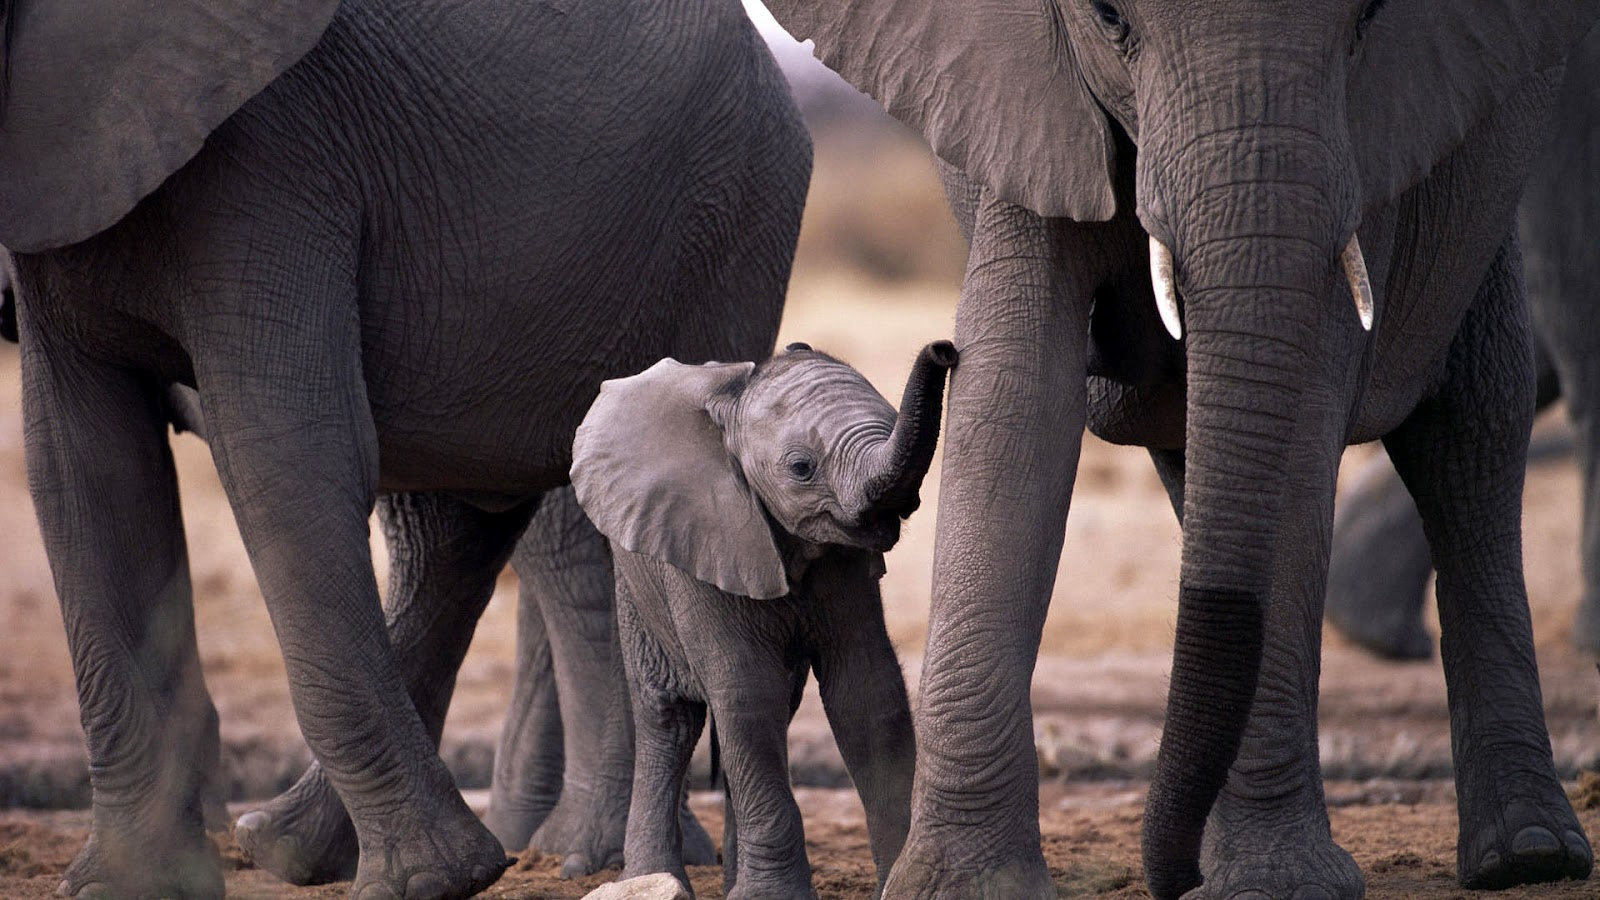 hd elephants wallpapers and photos | hd animals wallpapers